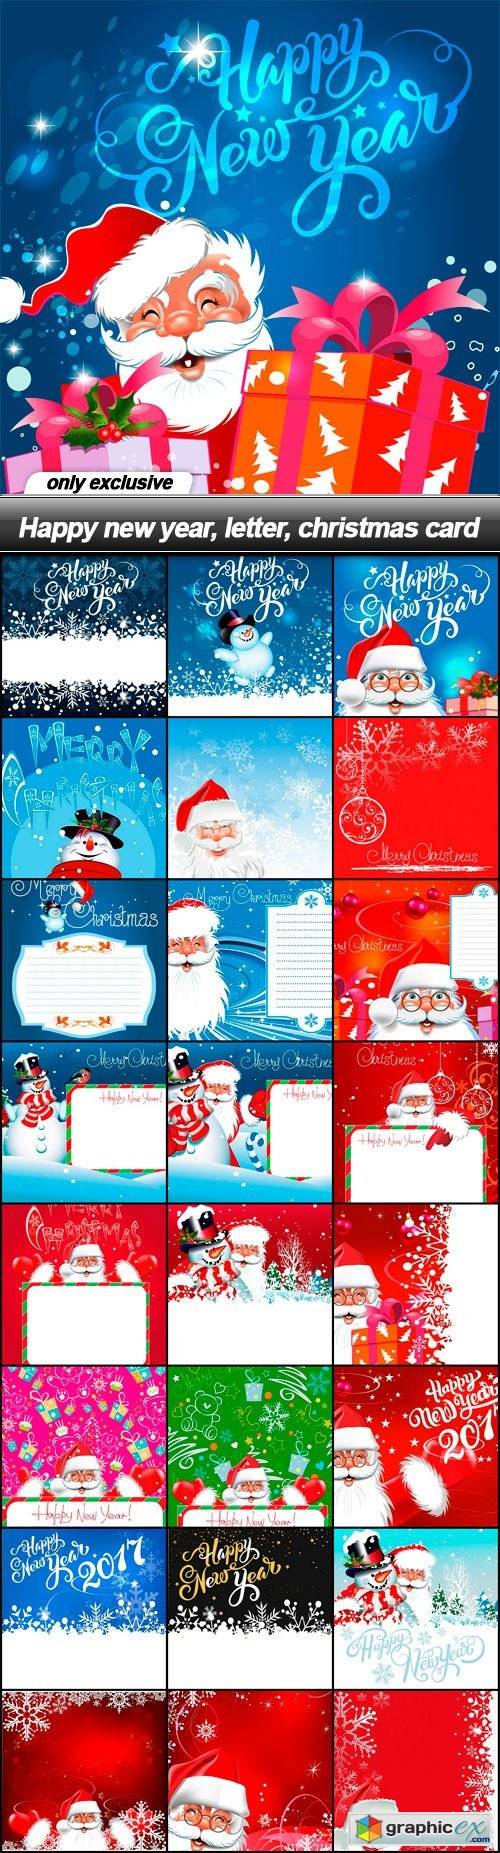 Happy new year, letter, christmas card - 25 EPS